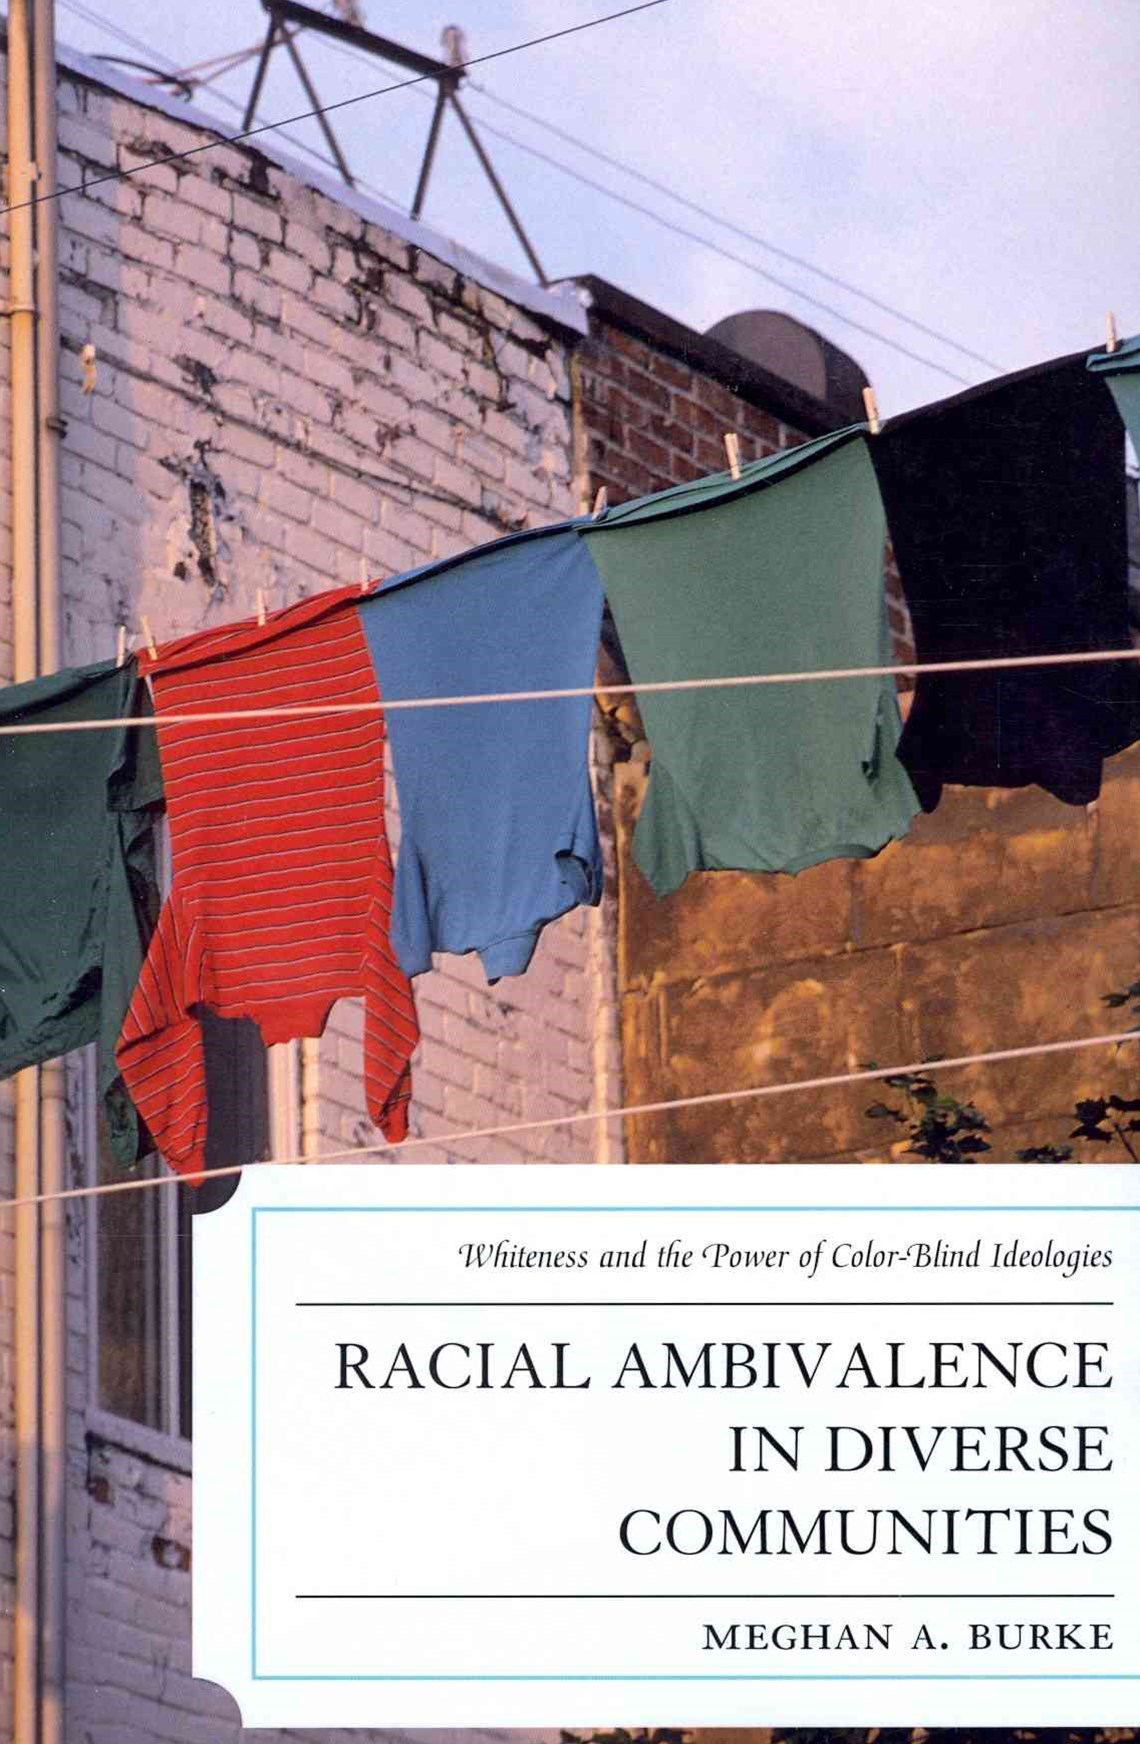 Racial Ambivalence in Diverse